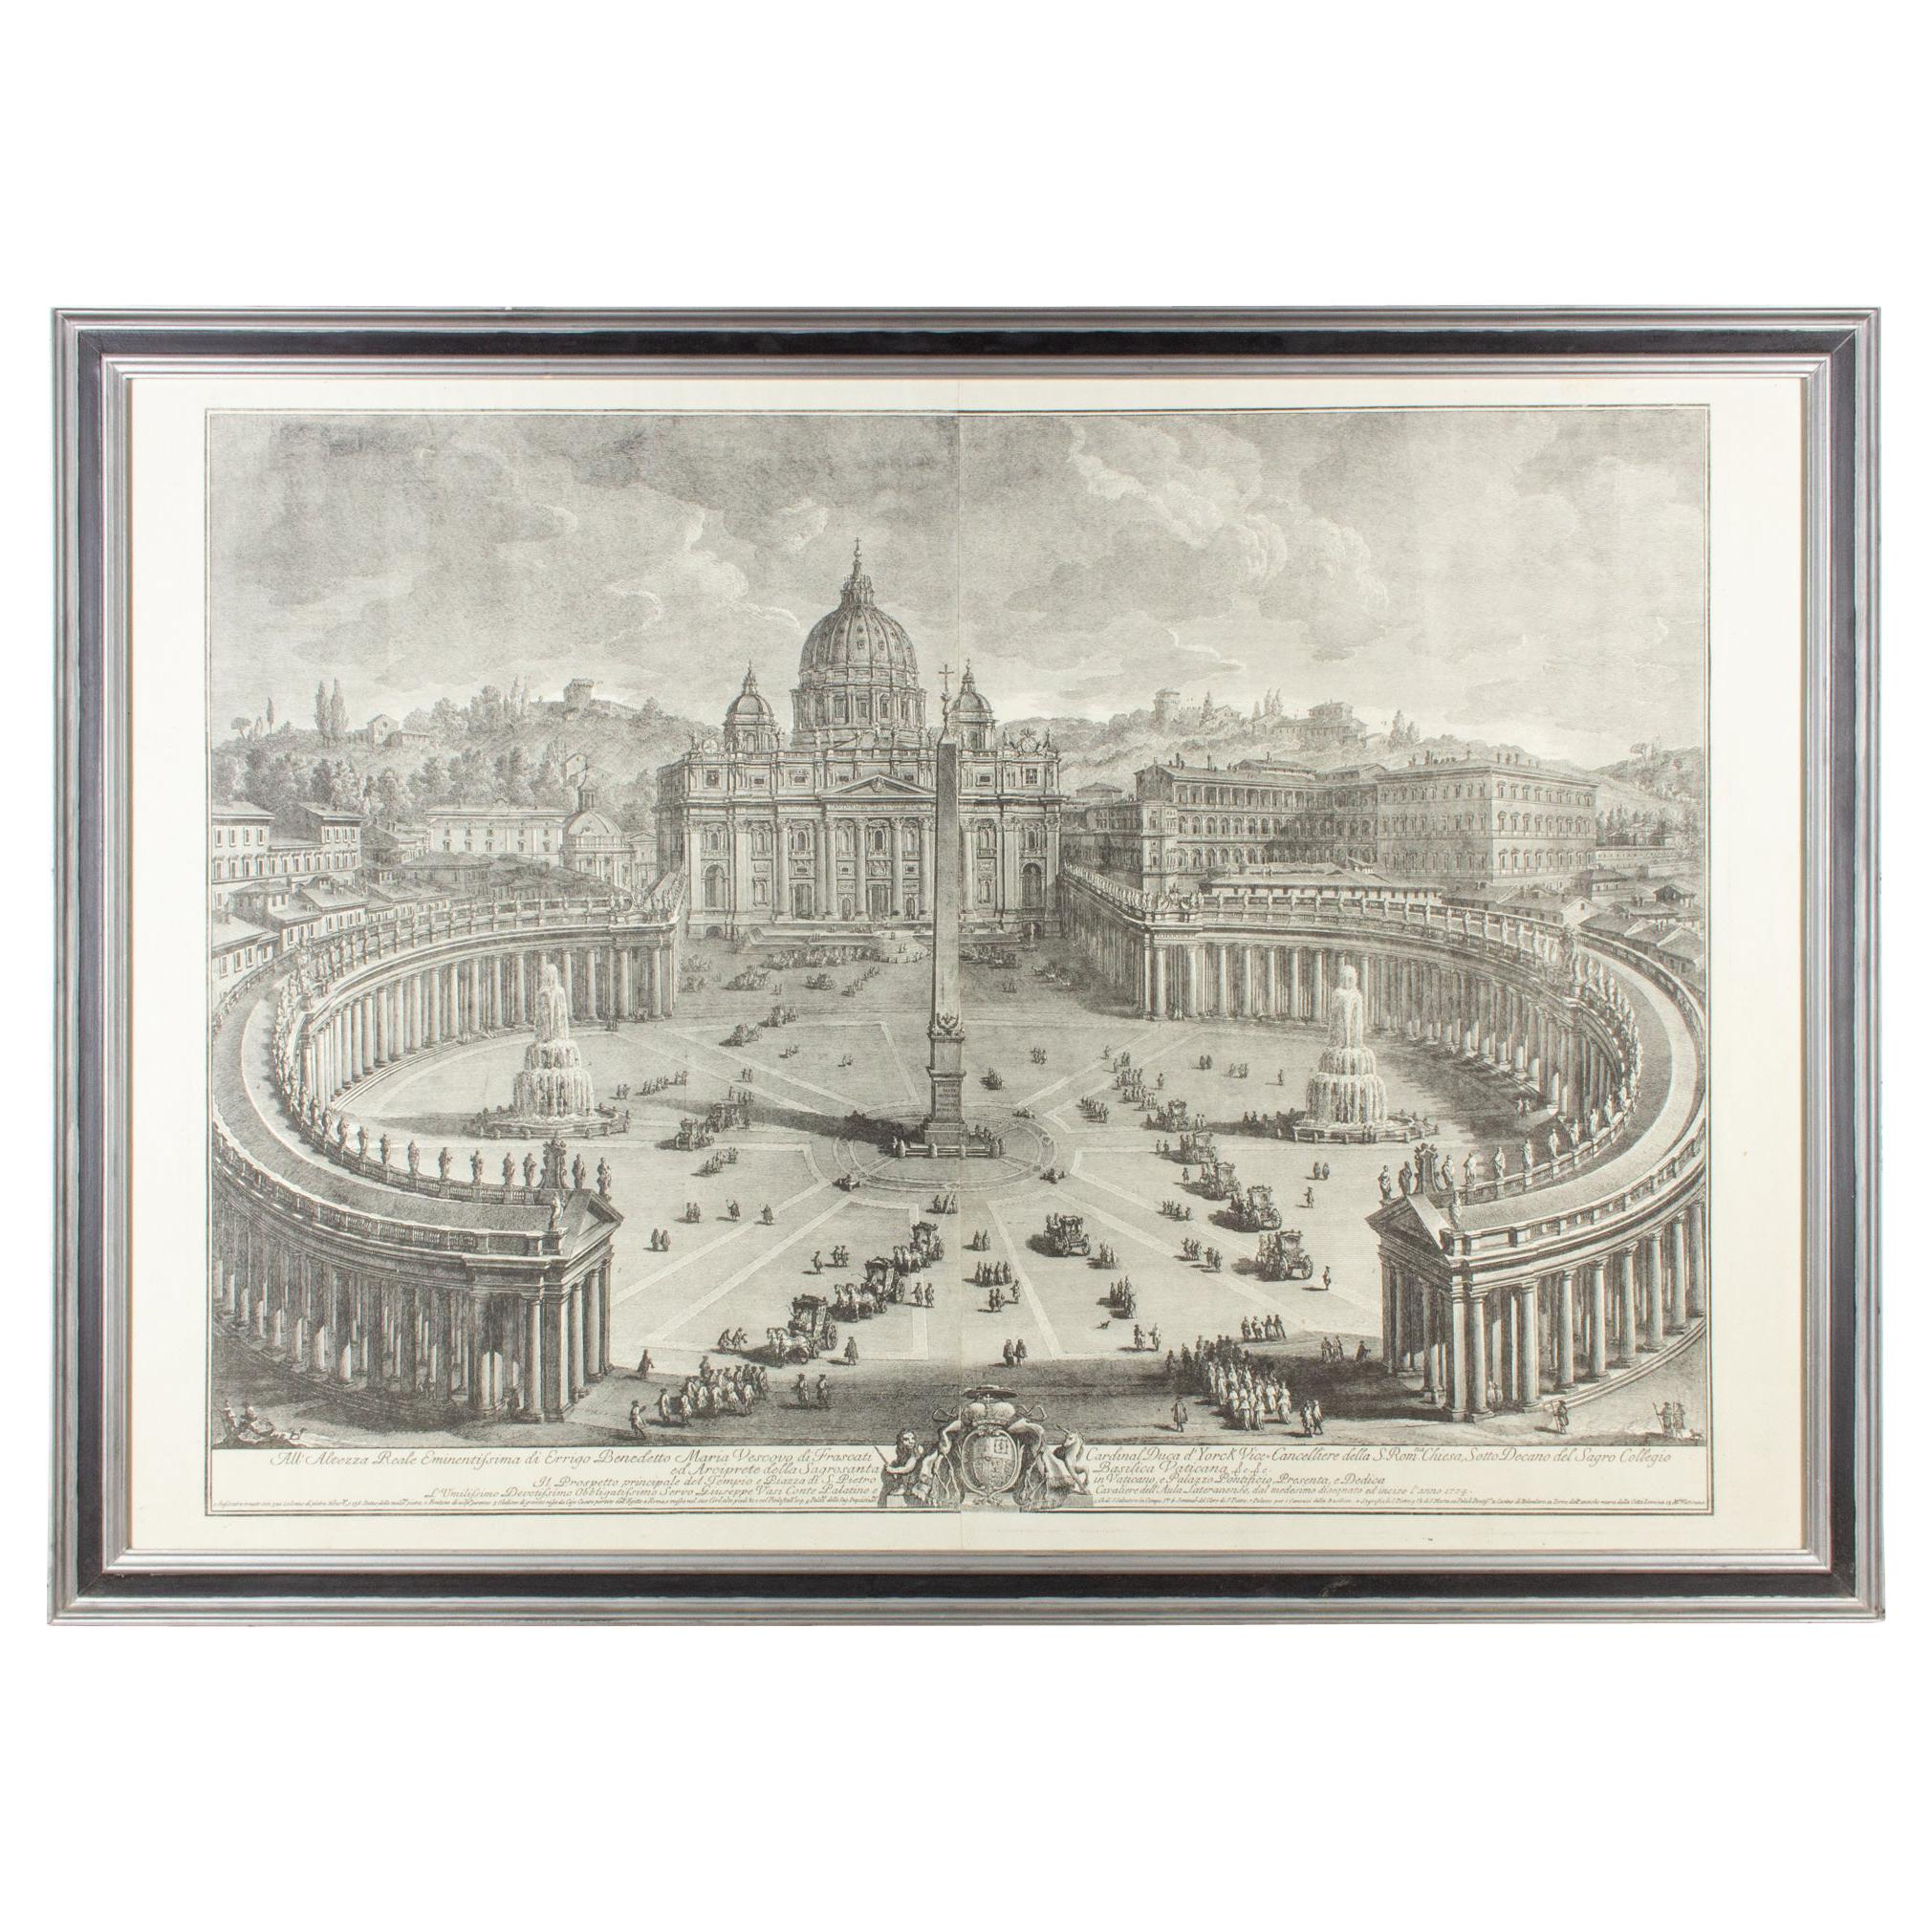 Antique Framed Etching of St. Peter's Basilica by Giuseppe Vasi found in France